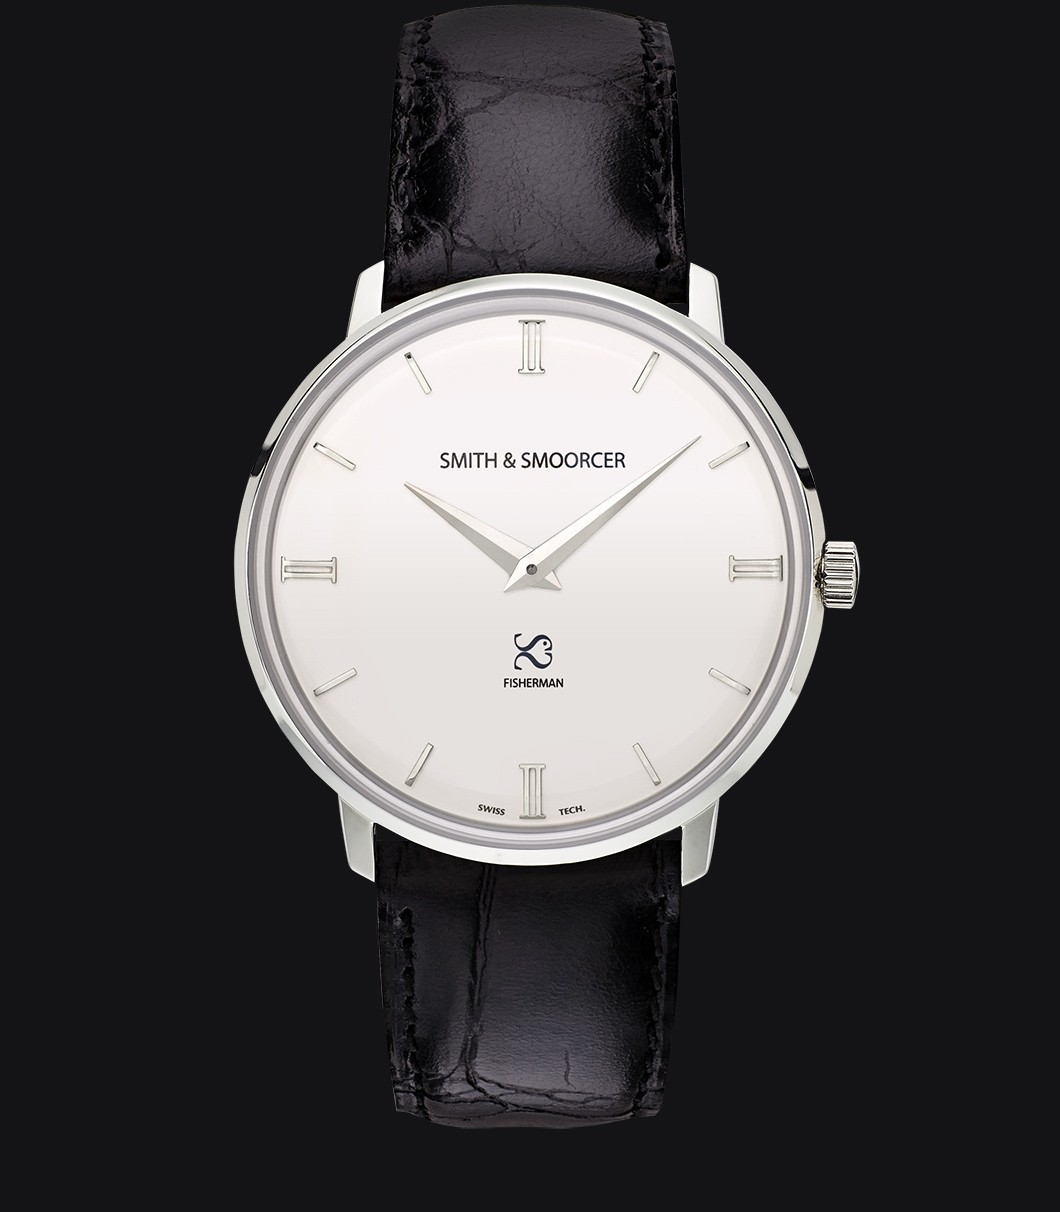 White Classic Watch Fisherman Snowy Luxury Black